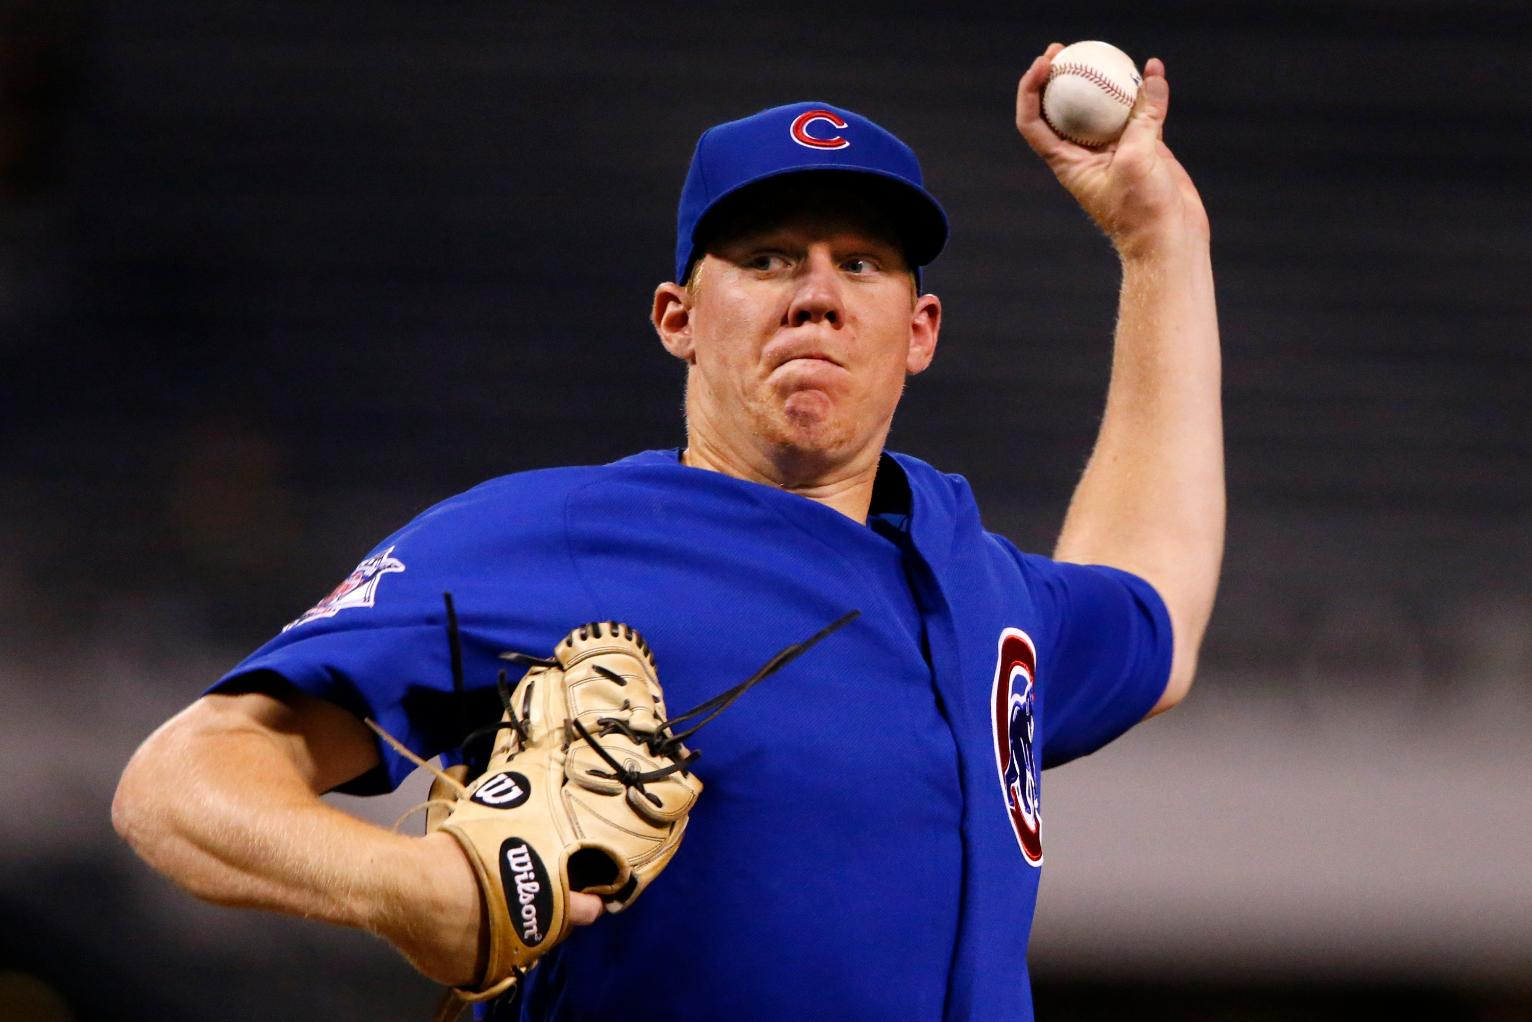 Cubs-Pirates stopped by rain, first tie in majors since 2005 | Sports News | US News